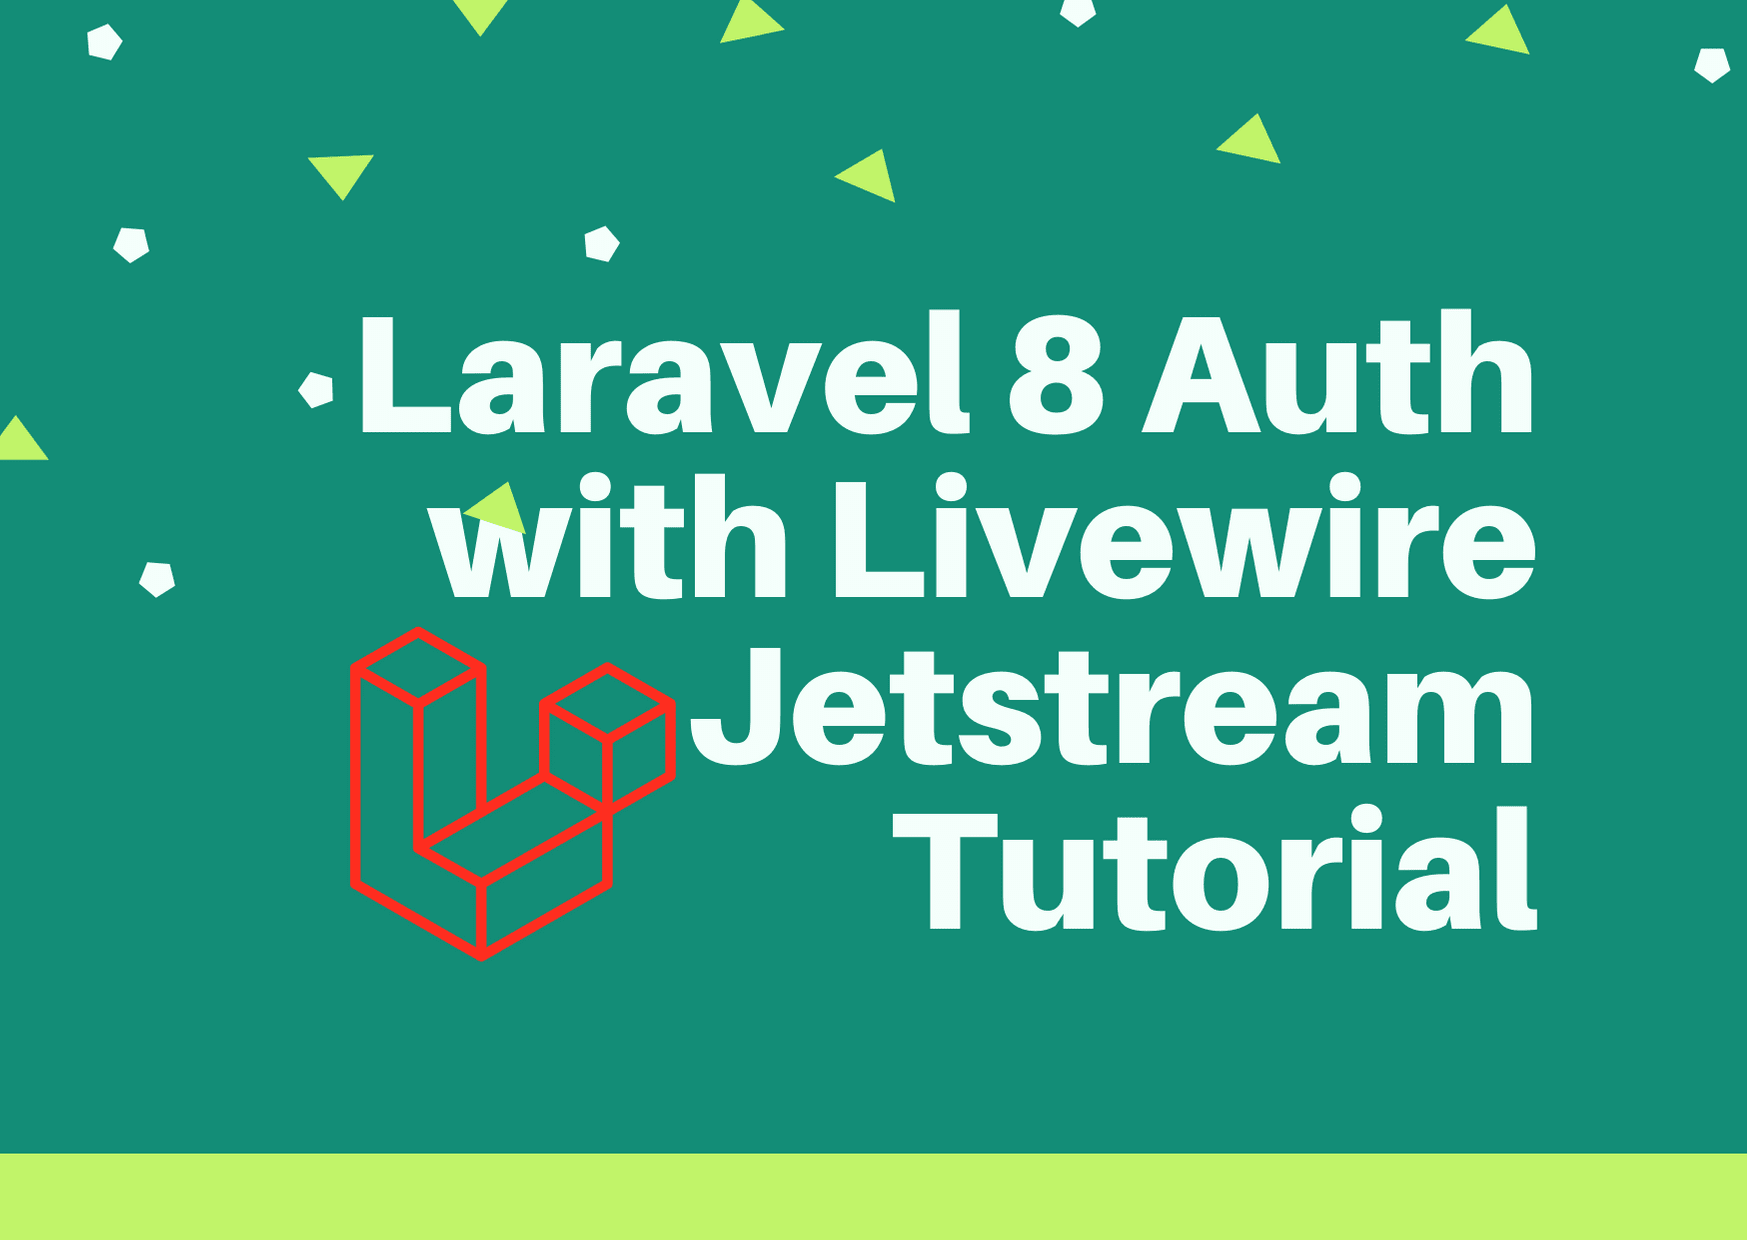 Laravel 8 Auth with Livewire Jetstream Tutorial